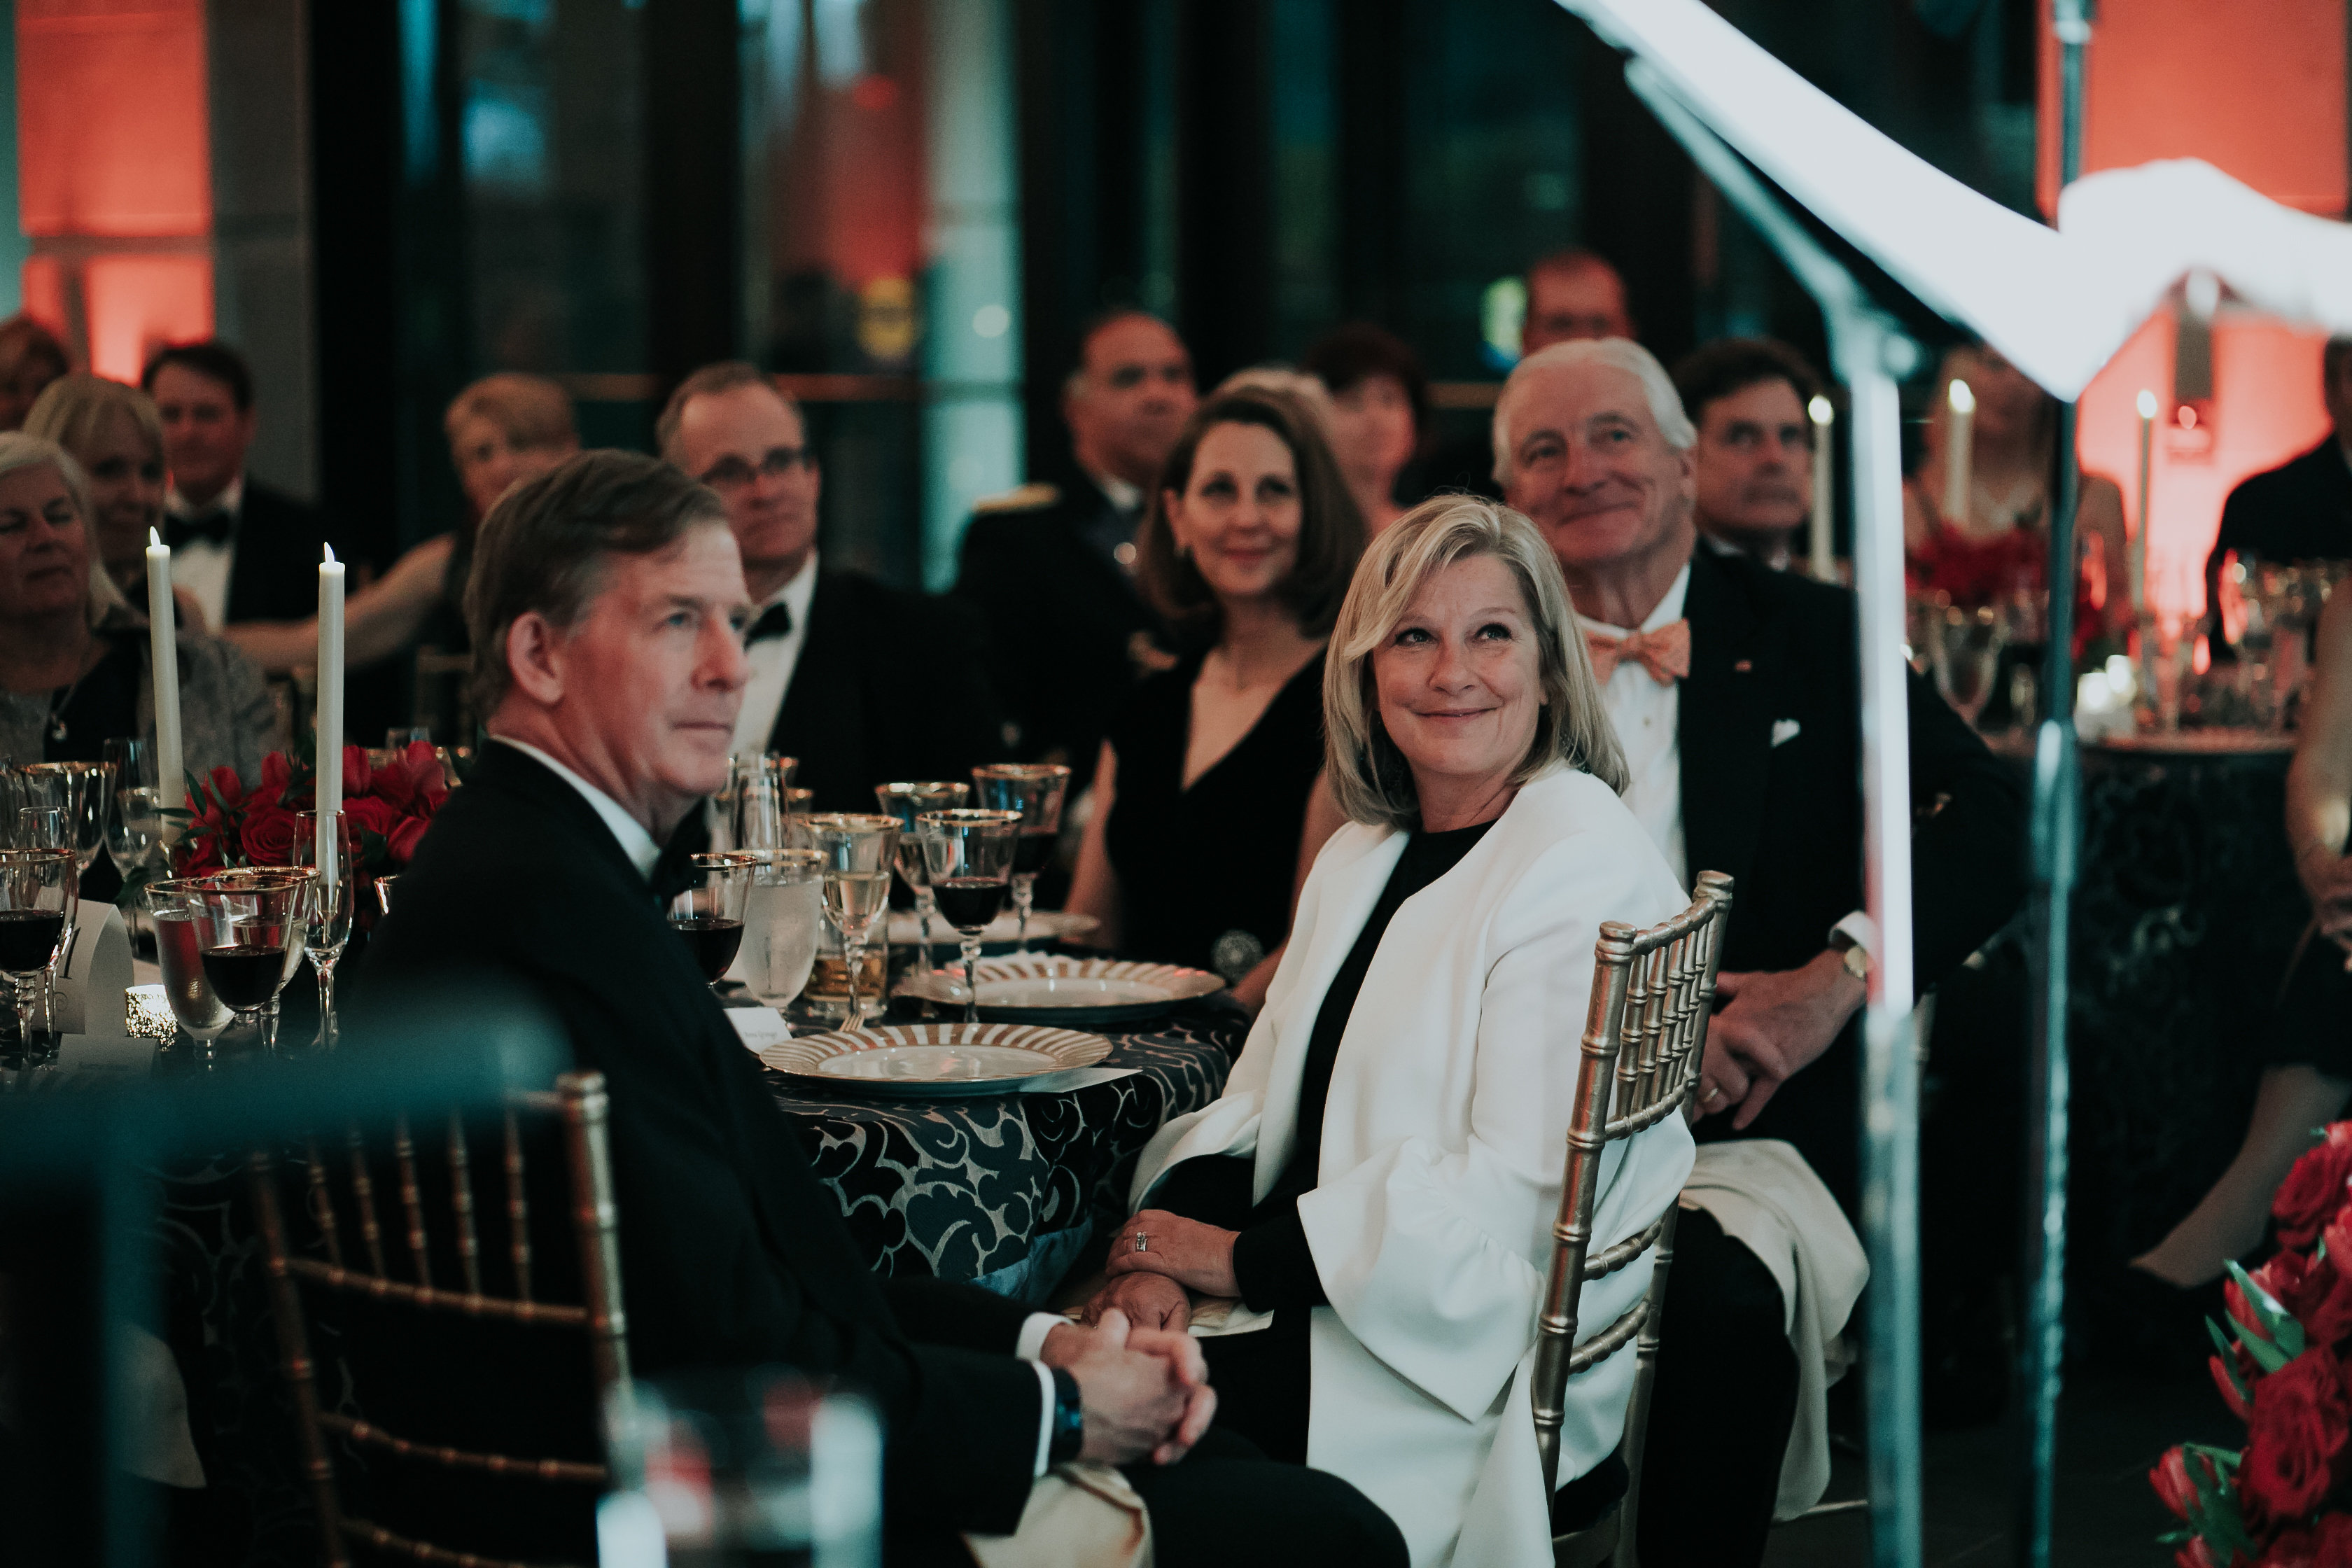 Guests listen to the keynote speaker at the Annual VMHC Gala